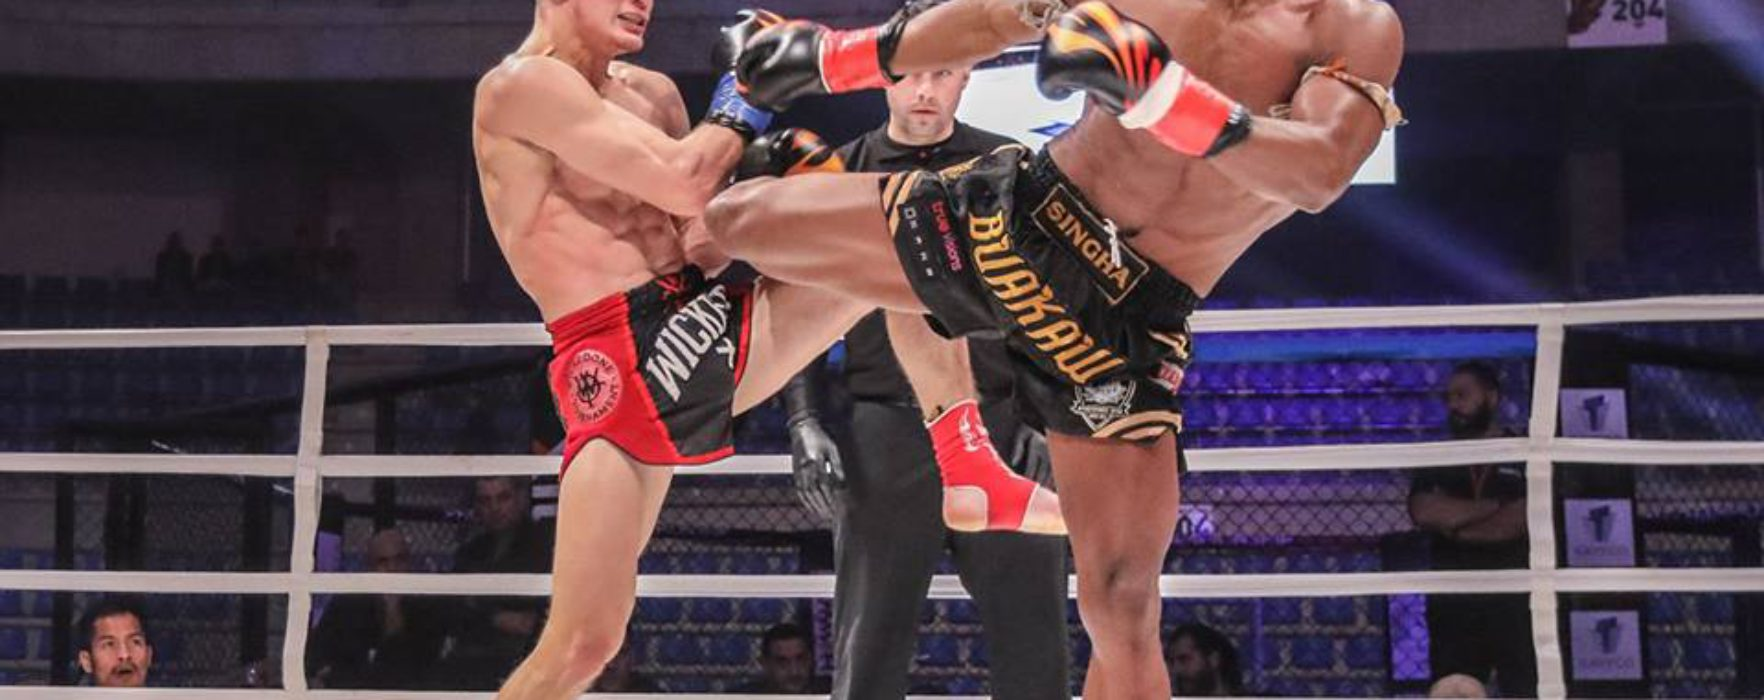 Video e risultati: Buakaw vs Kulebin – Phoenix Fighting Championship – 10/12/2016